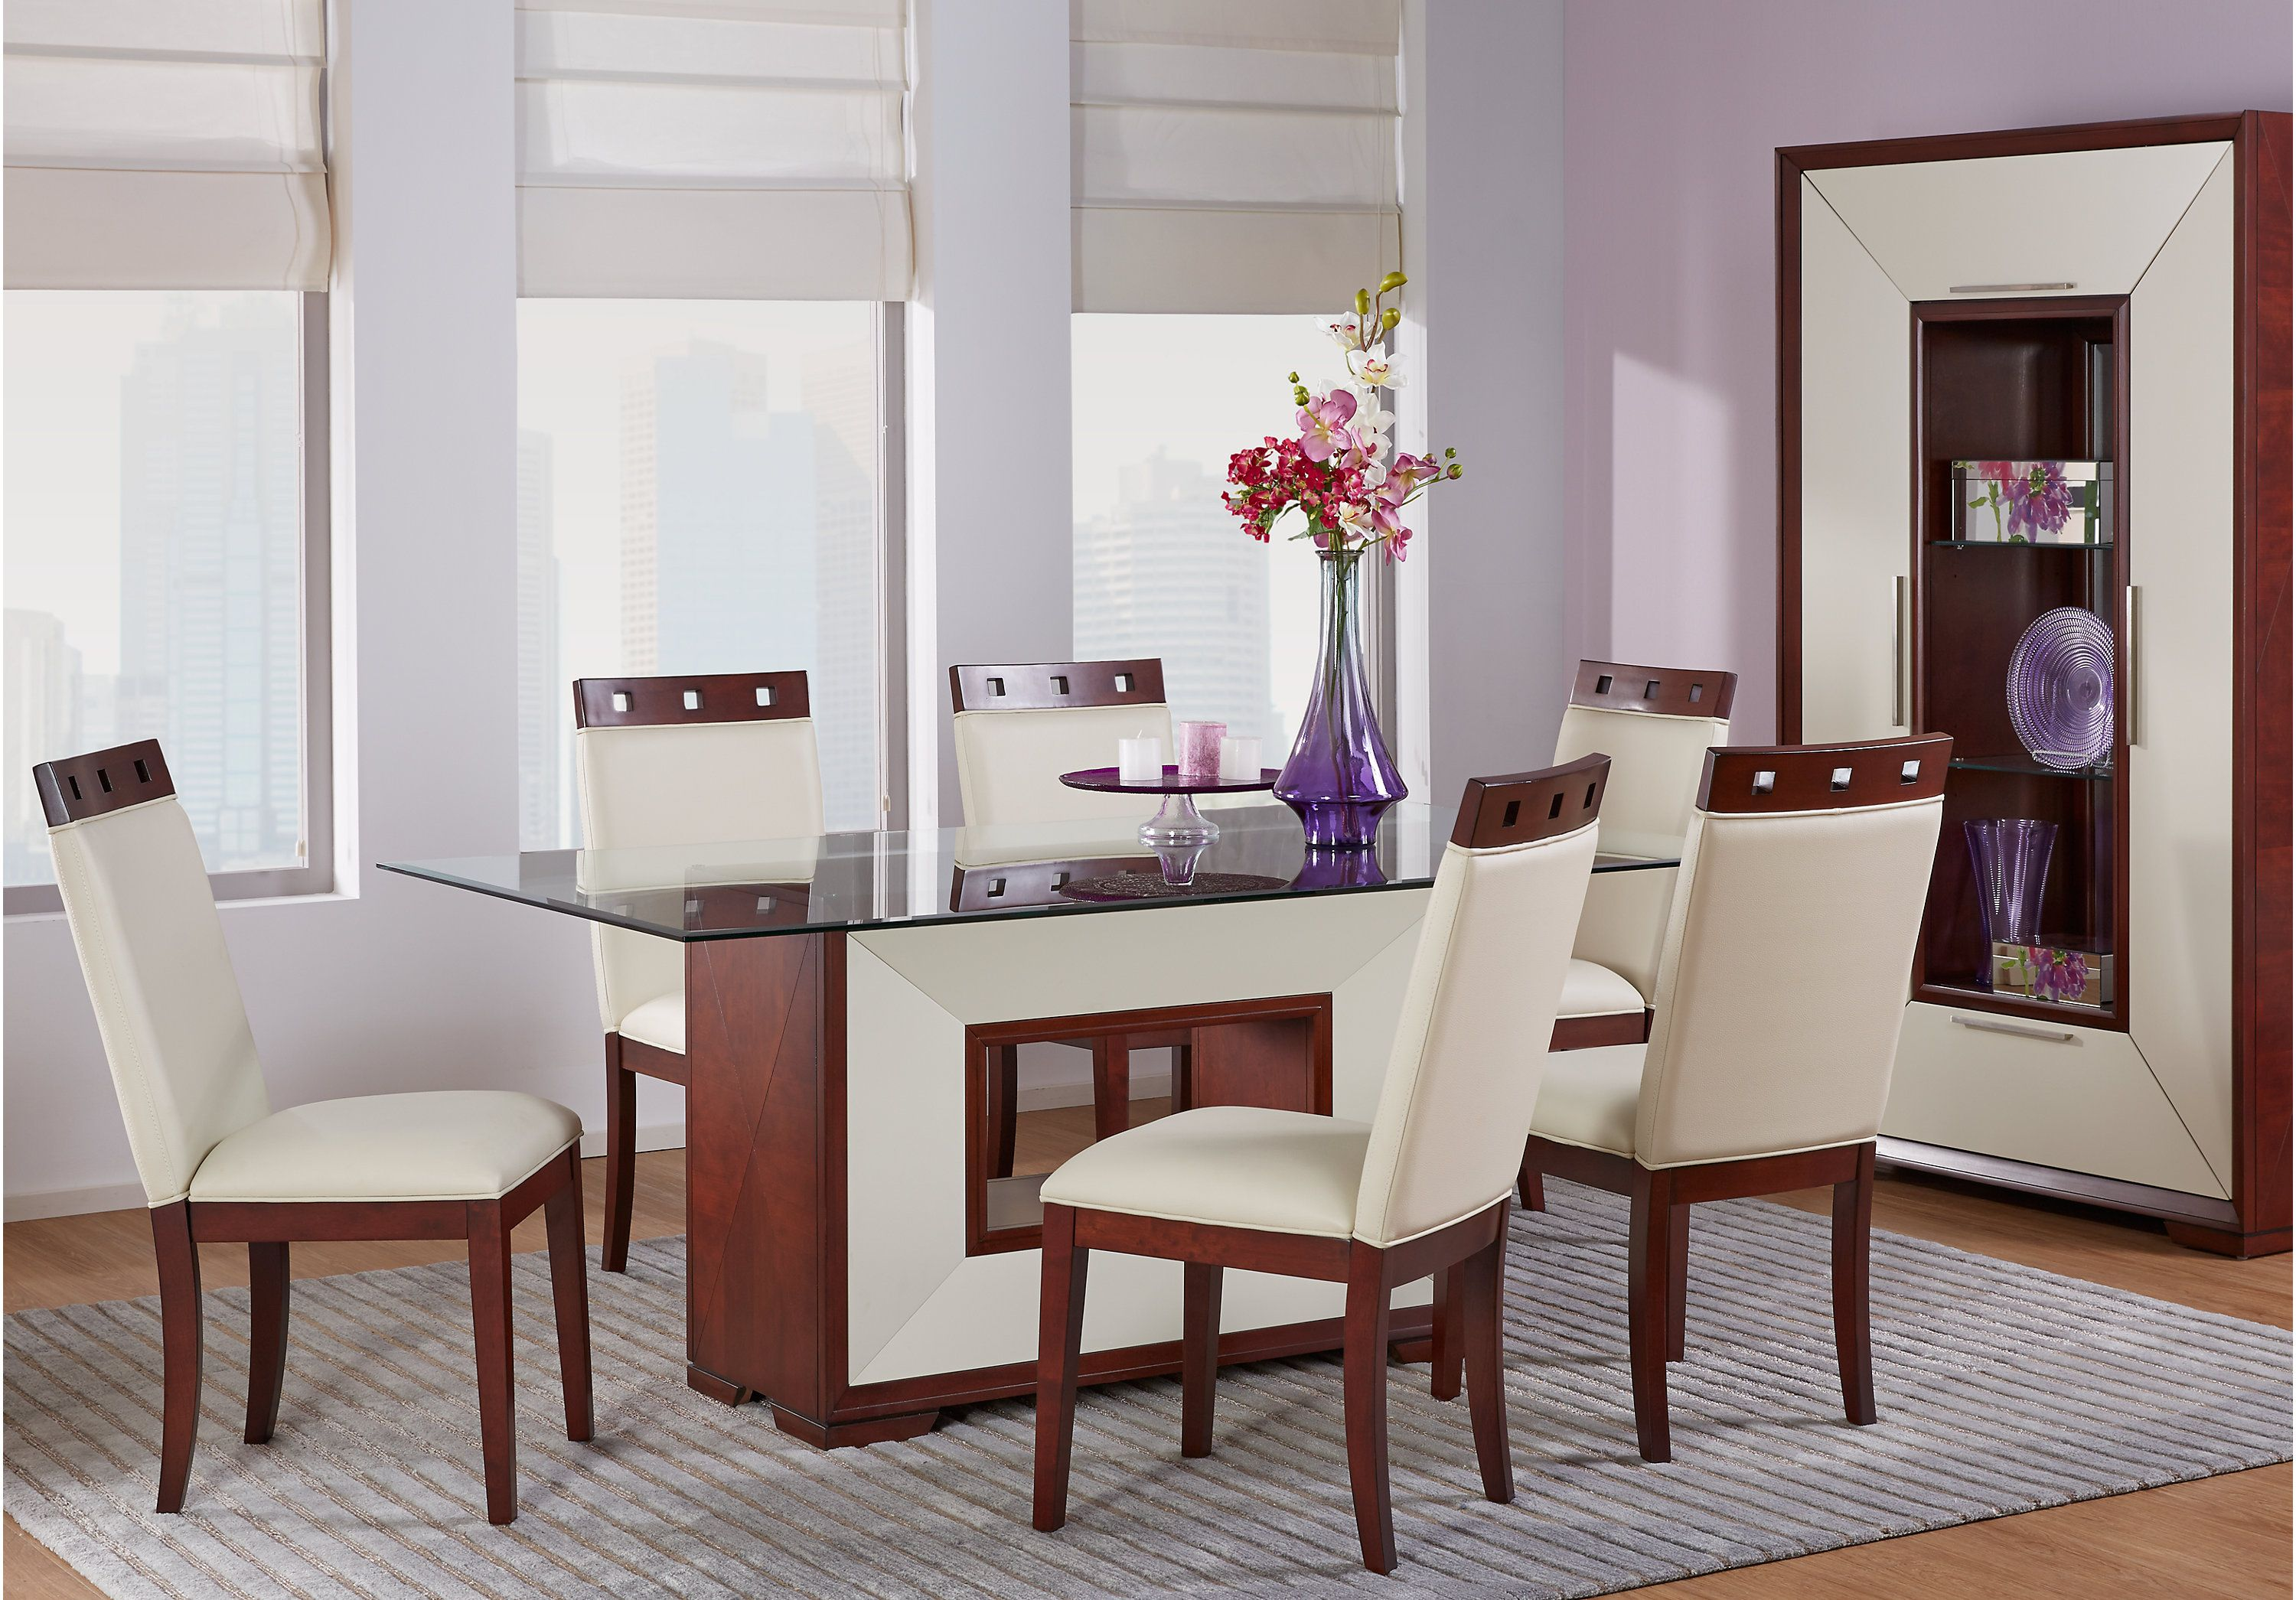 sofia vergara savona ivory 5 pc rectangle dining room with glass top dining room sets